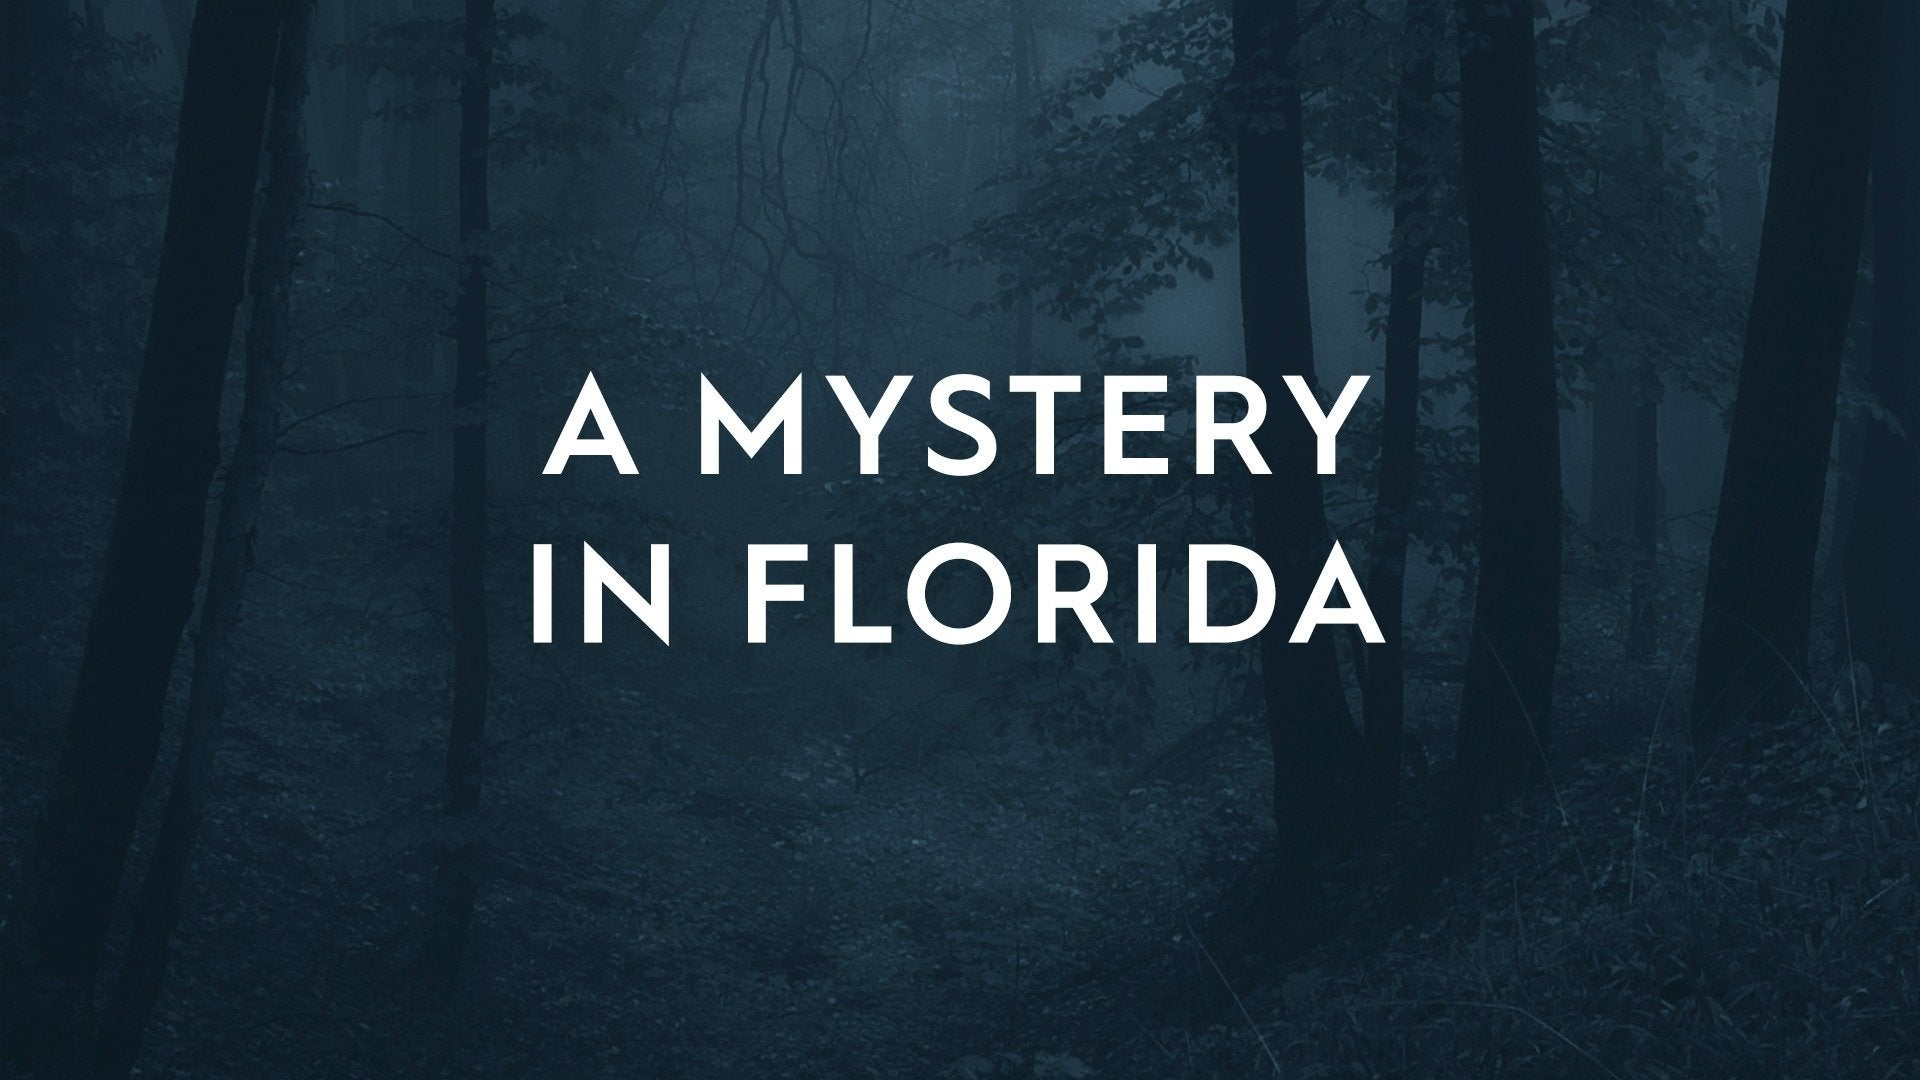 A Mystery in Florida